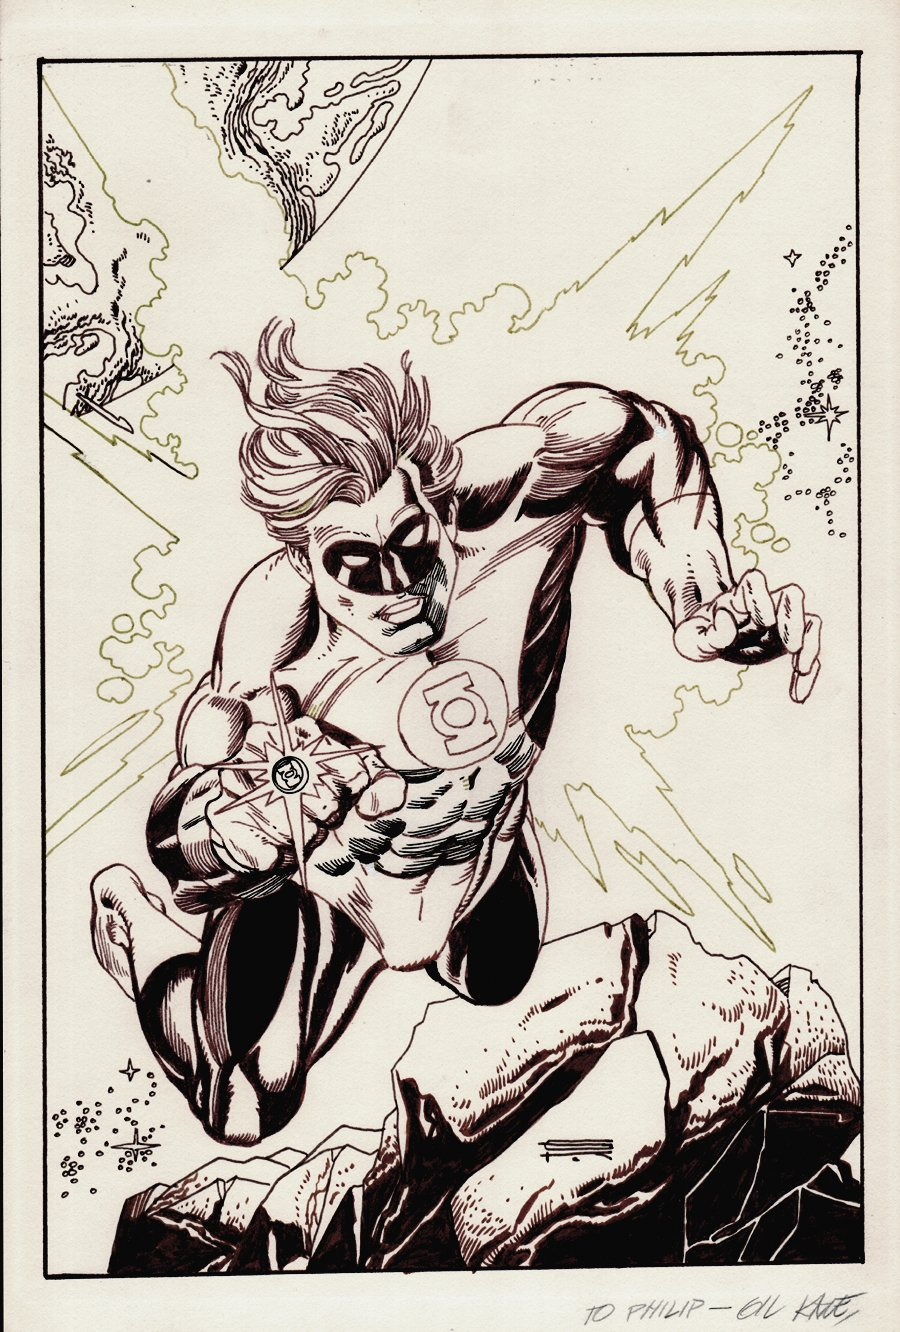 Green Lantern Gallery cover GK inks